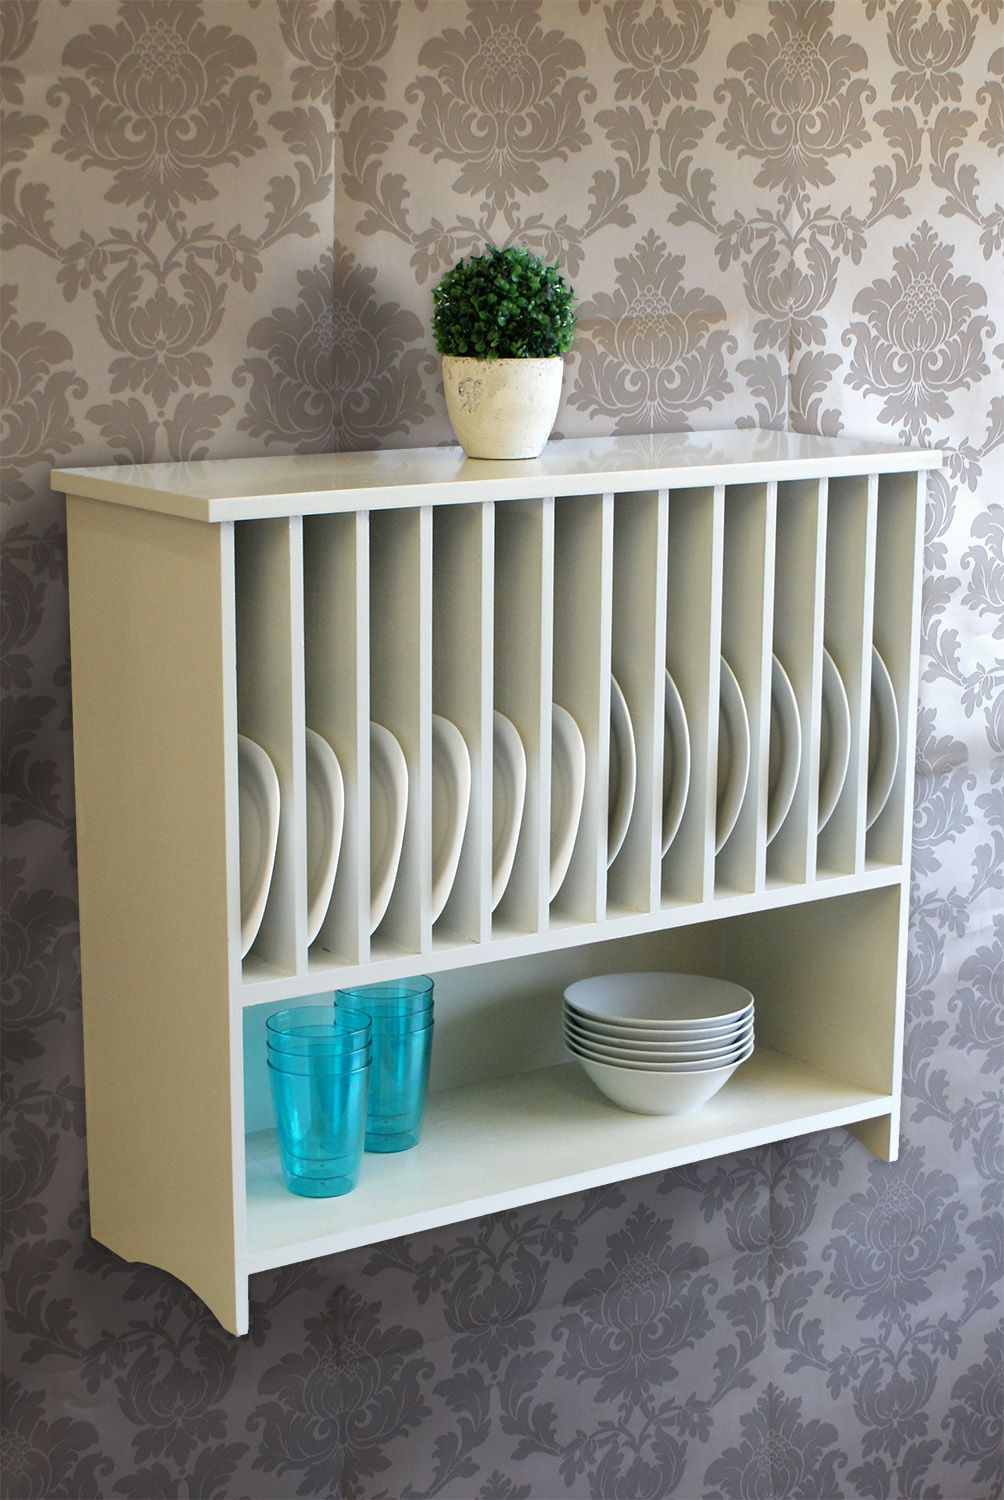 Wooden Wall mounted Plate Rack with Shelf Kitchen Storage - off white painted & Wooden Wall mounted Plate Rack with Shelf Kitchen Storage - off ...